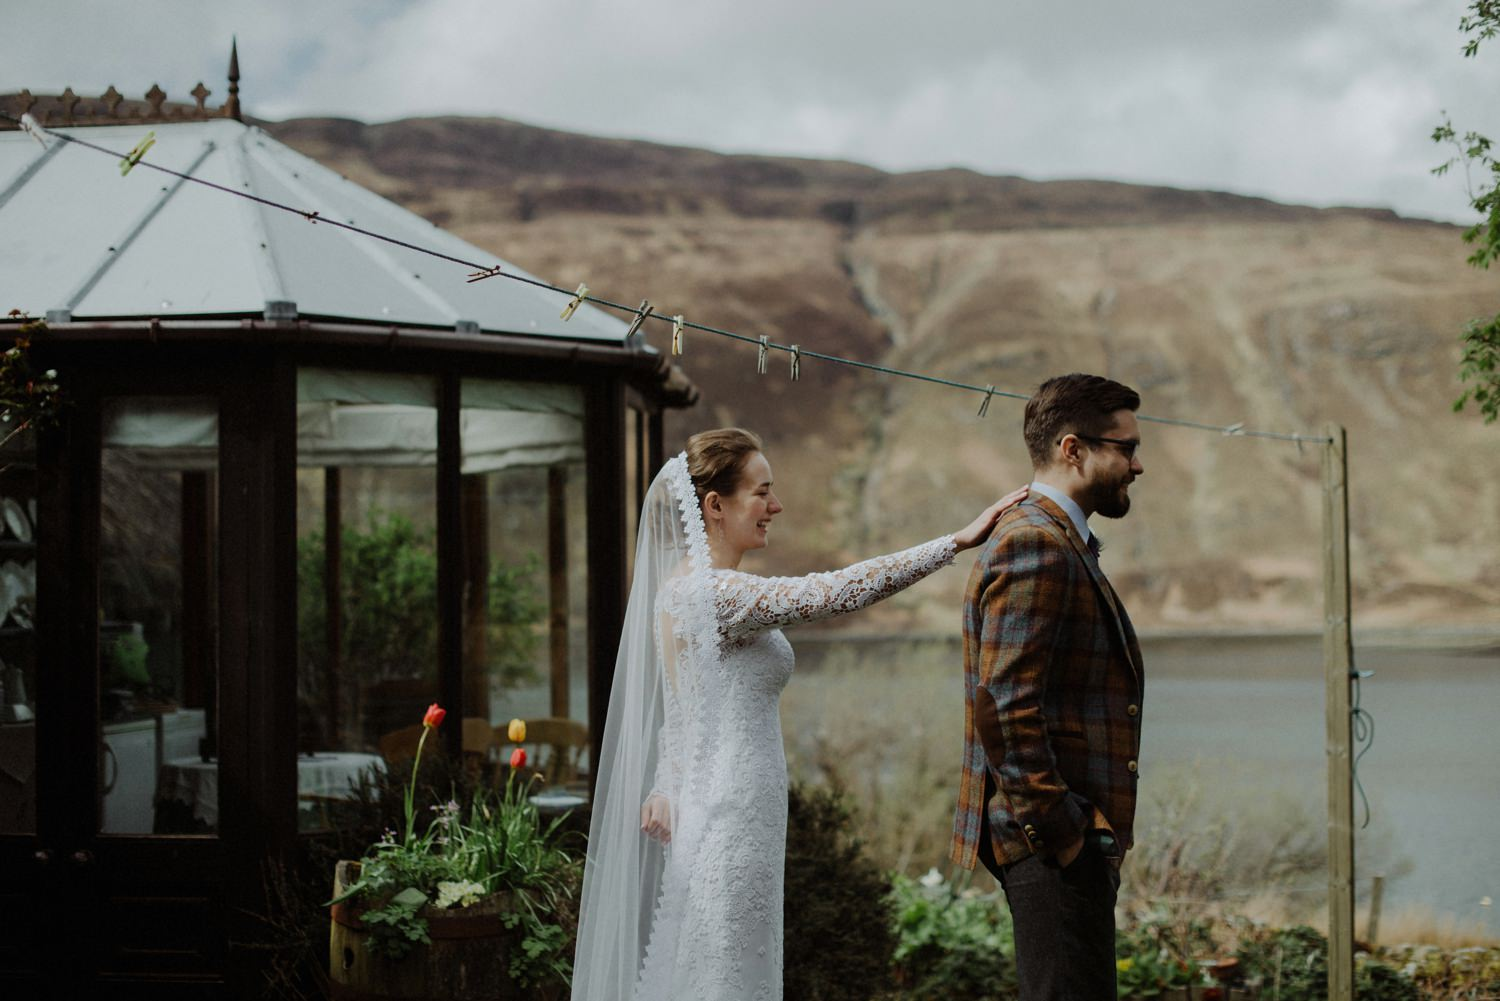 lsle of Skye elopement photographer_0387